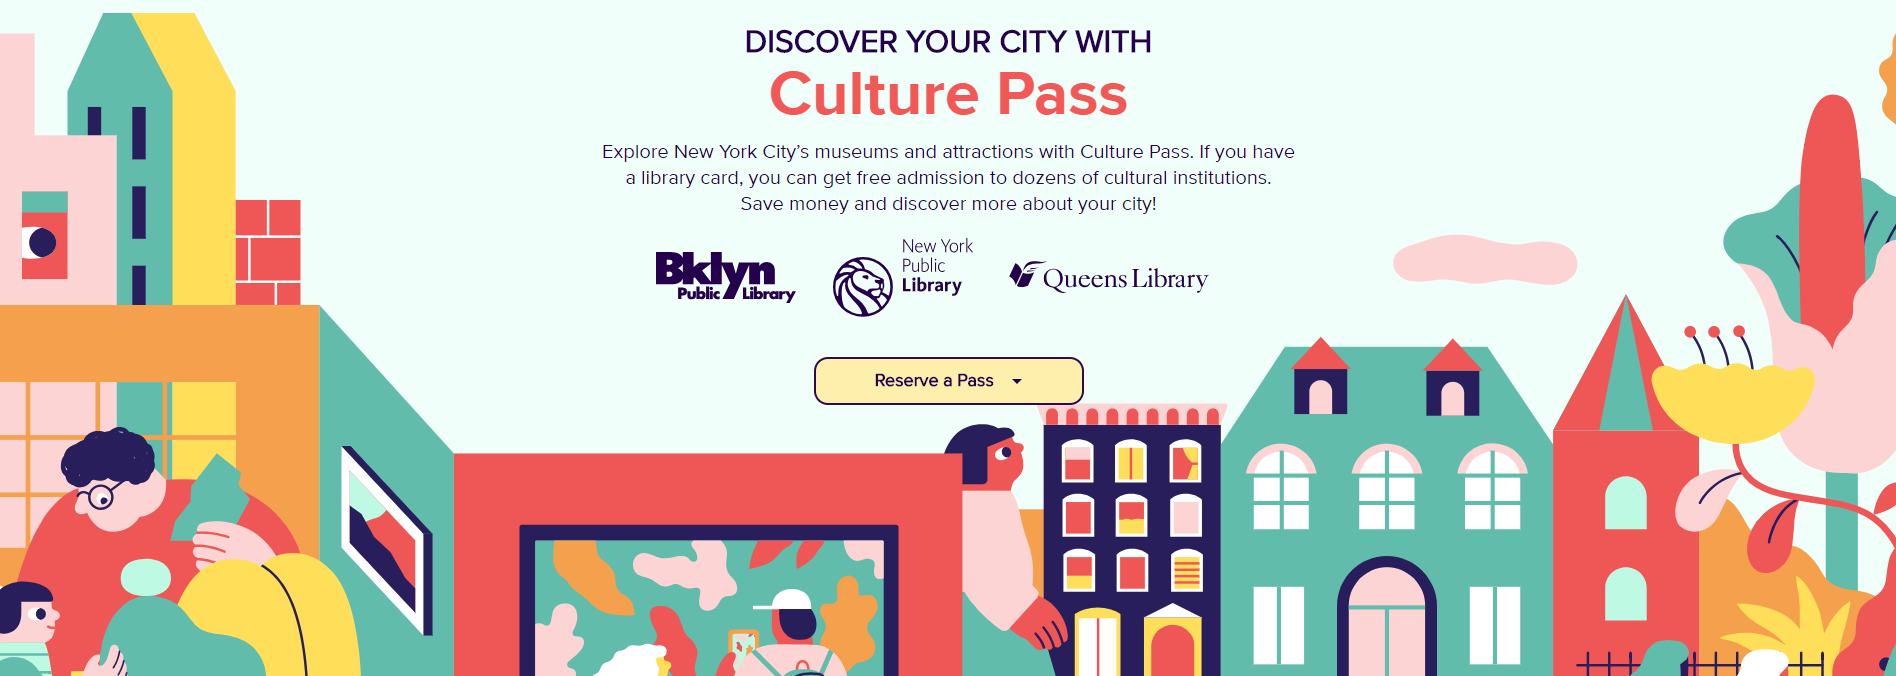 NYC Libraries Offer Free Digital Culture Pass | INFOdocket